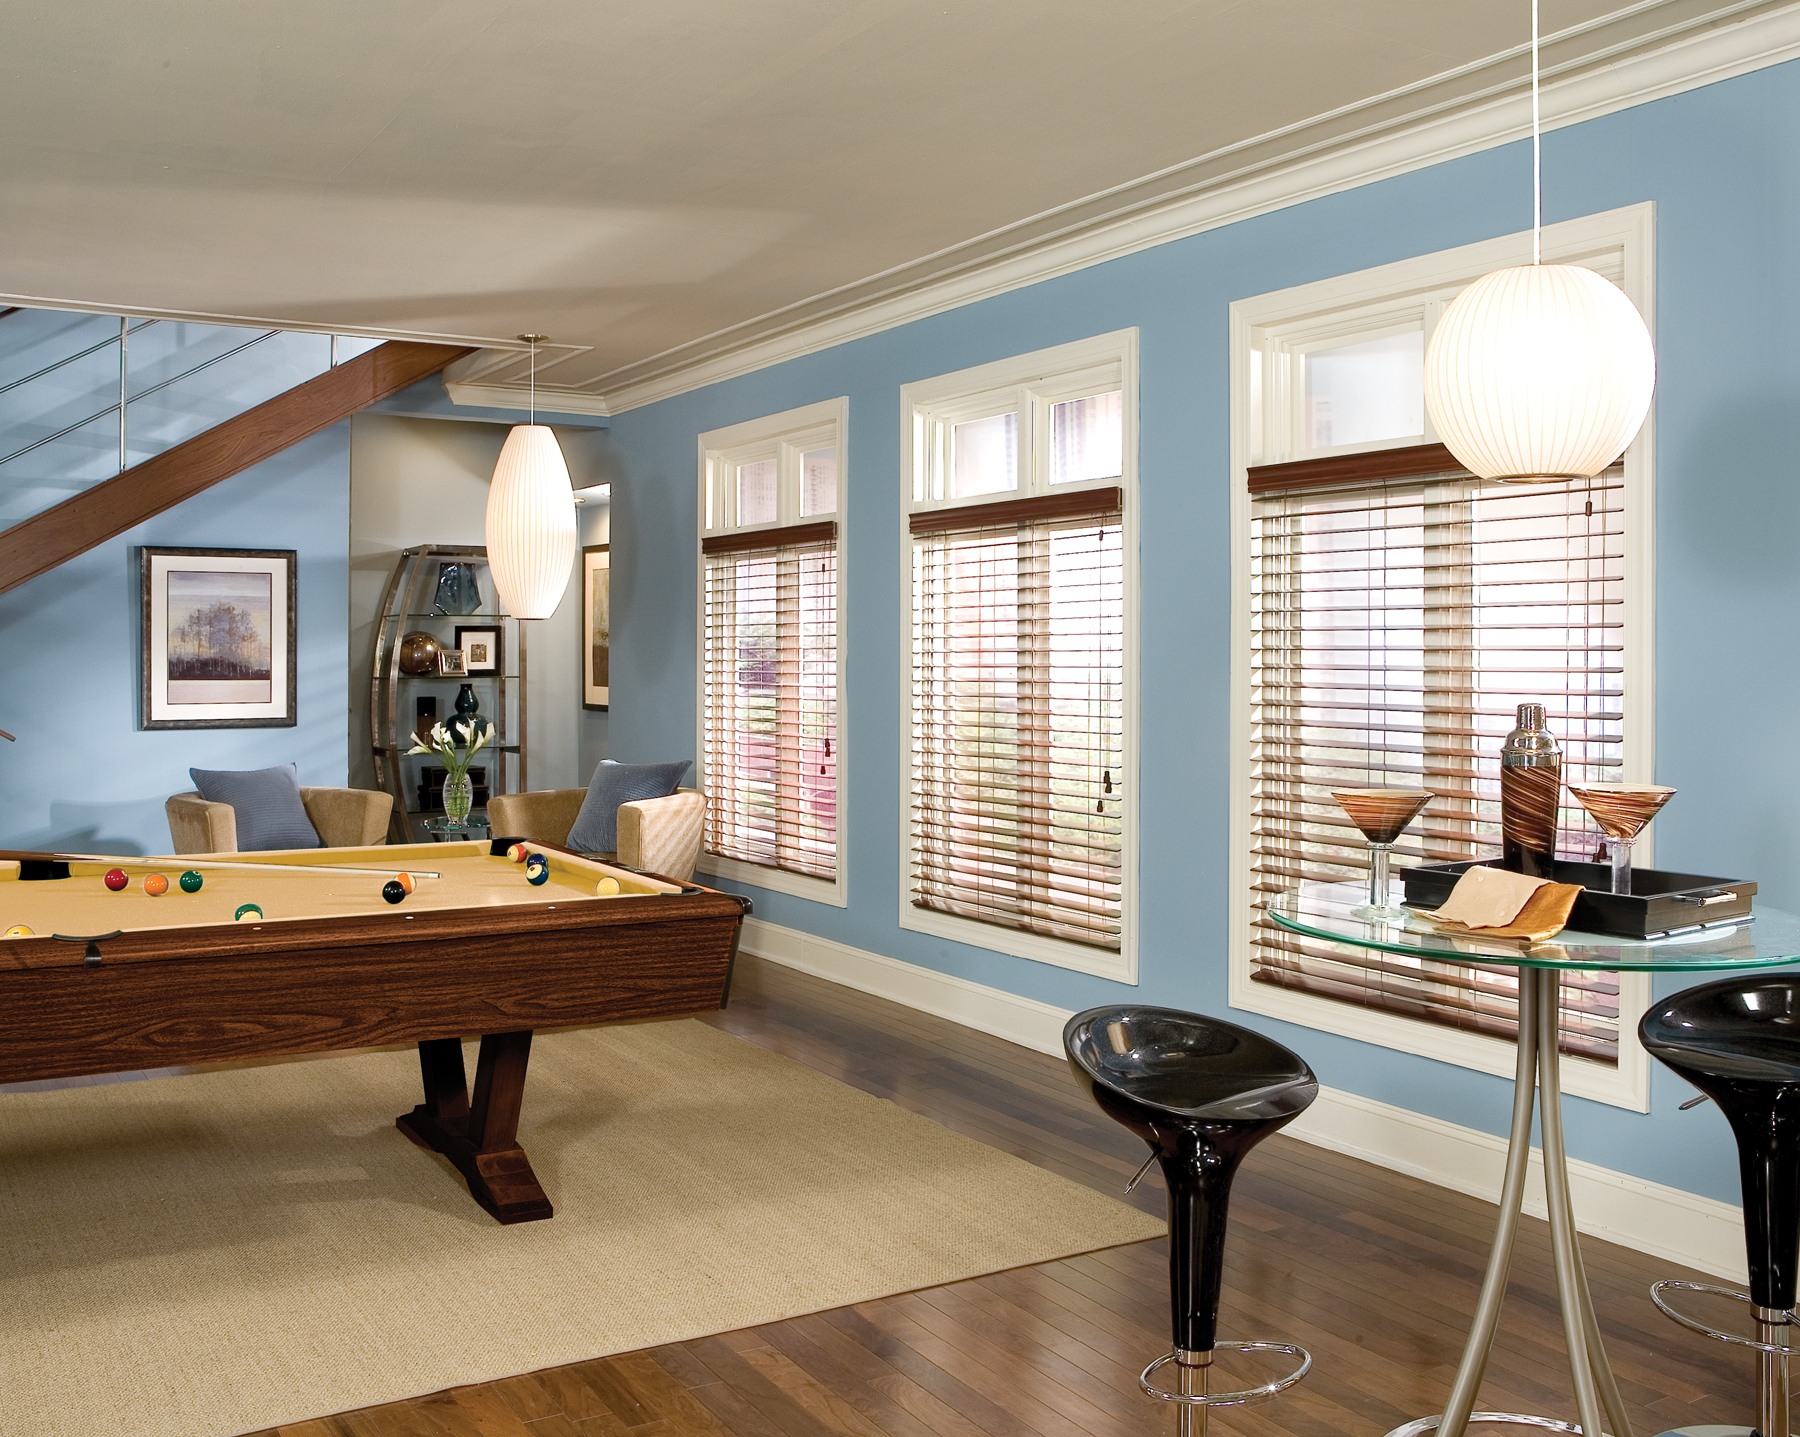 glass window with trim board window and bali blinds on blue wall matched with wooden floor for interior design ideas